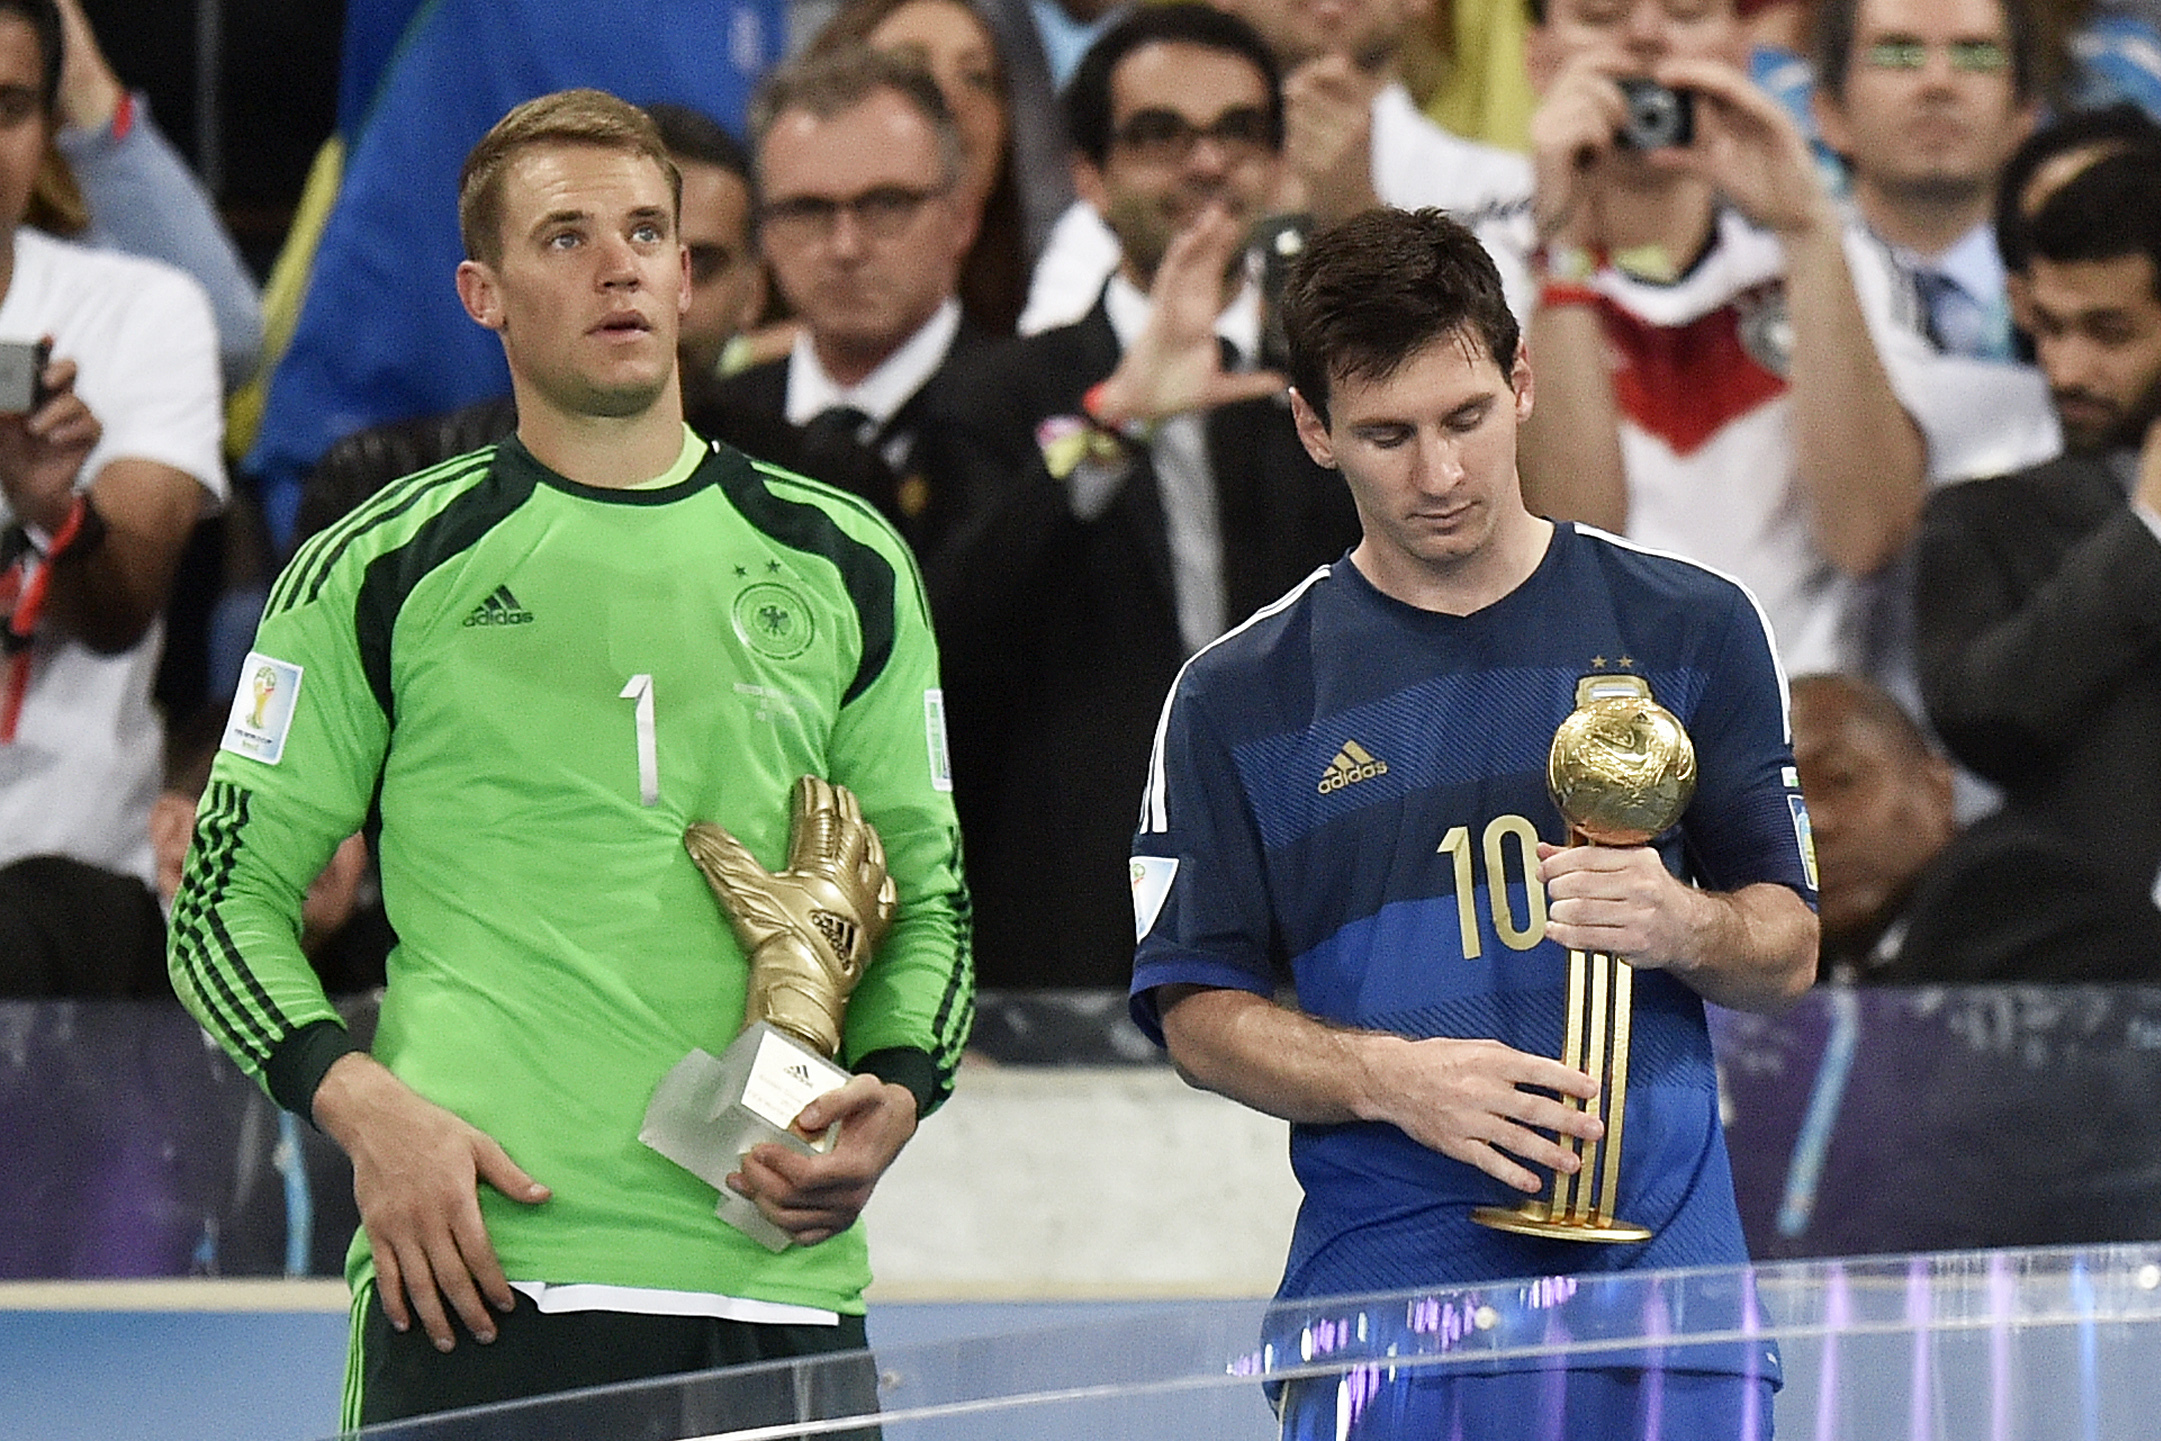 Lionel Messi S World Cup Golden Ball Award Was A Mistake Says Sepp Blatter Bleacher Report Latest News Videos And Highlights